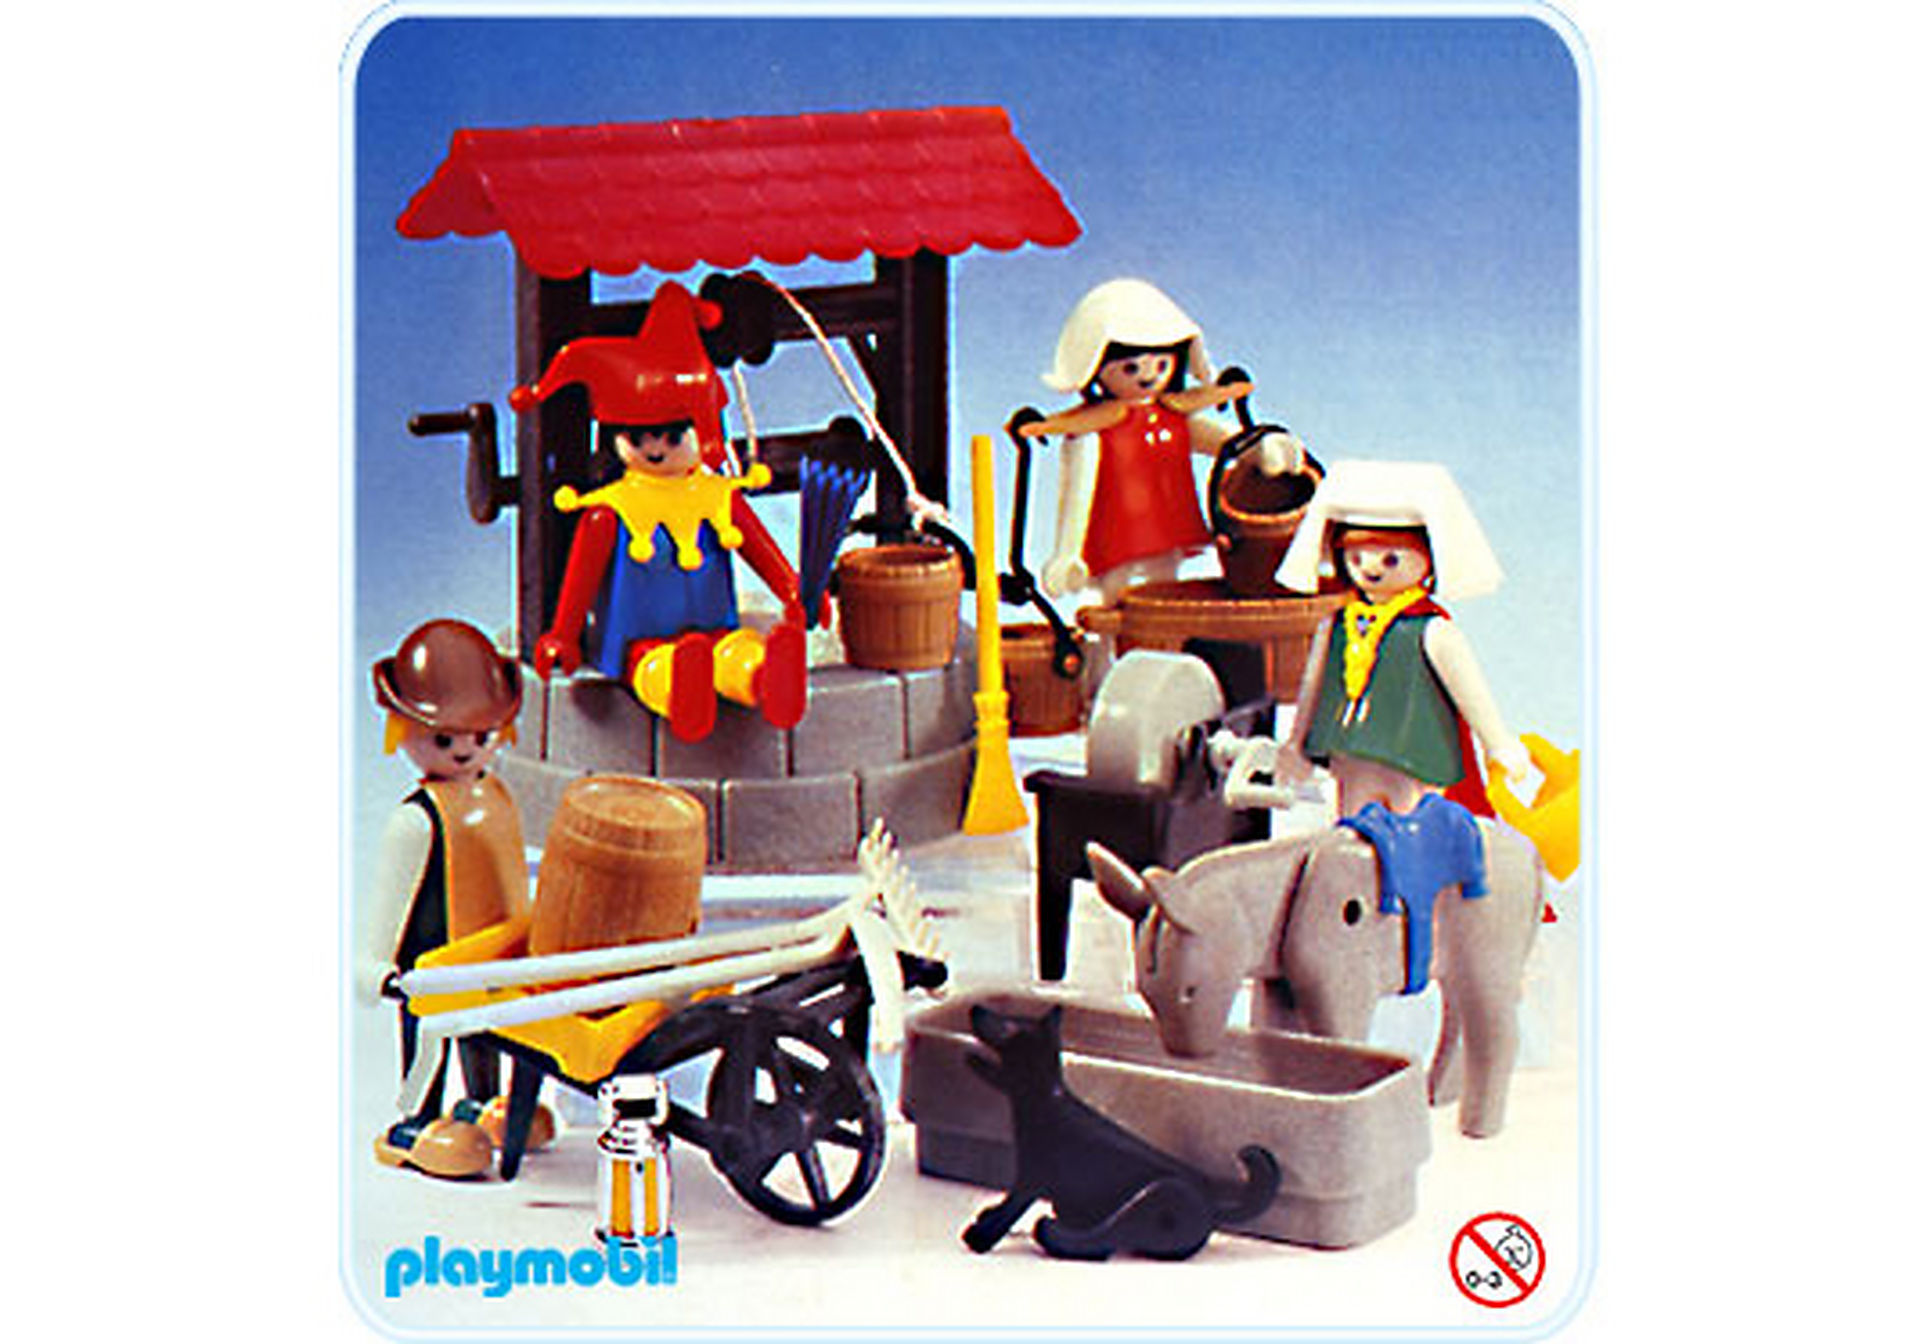 http://media.playmobil.com/i/playmobil/3487-A_product_detail/Bauern